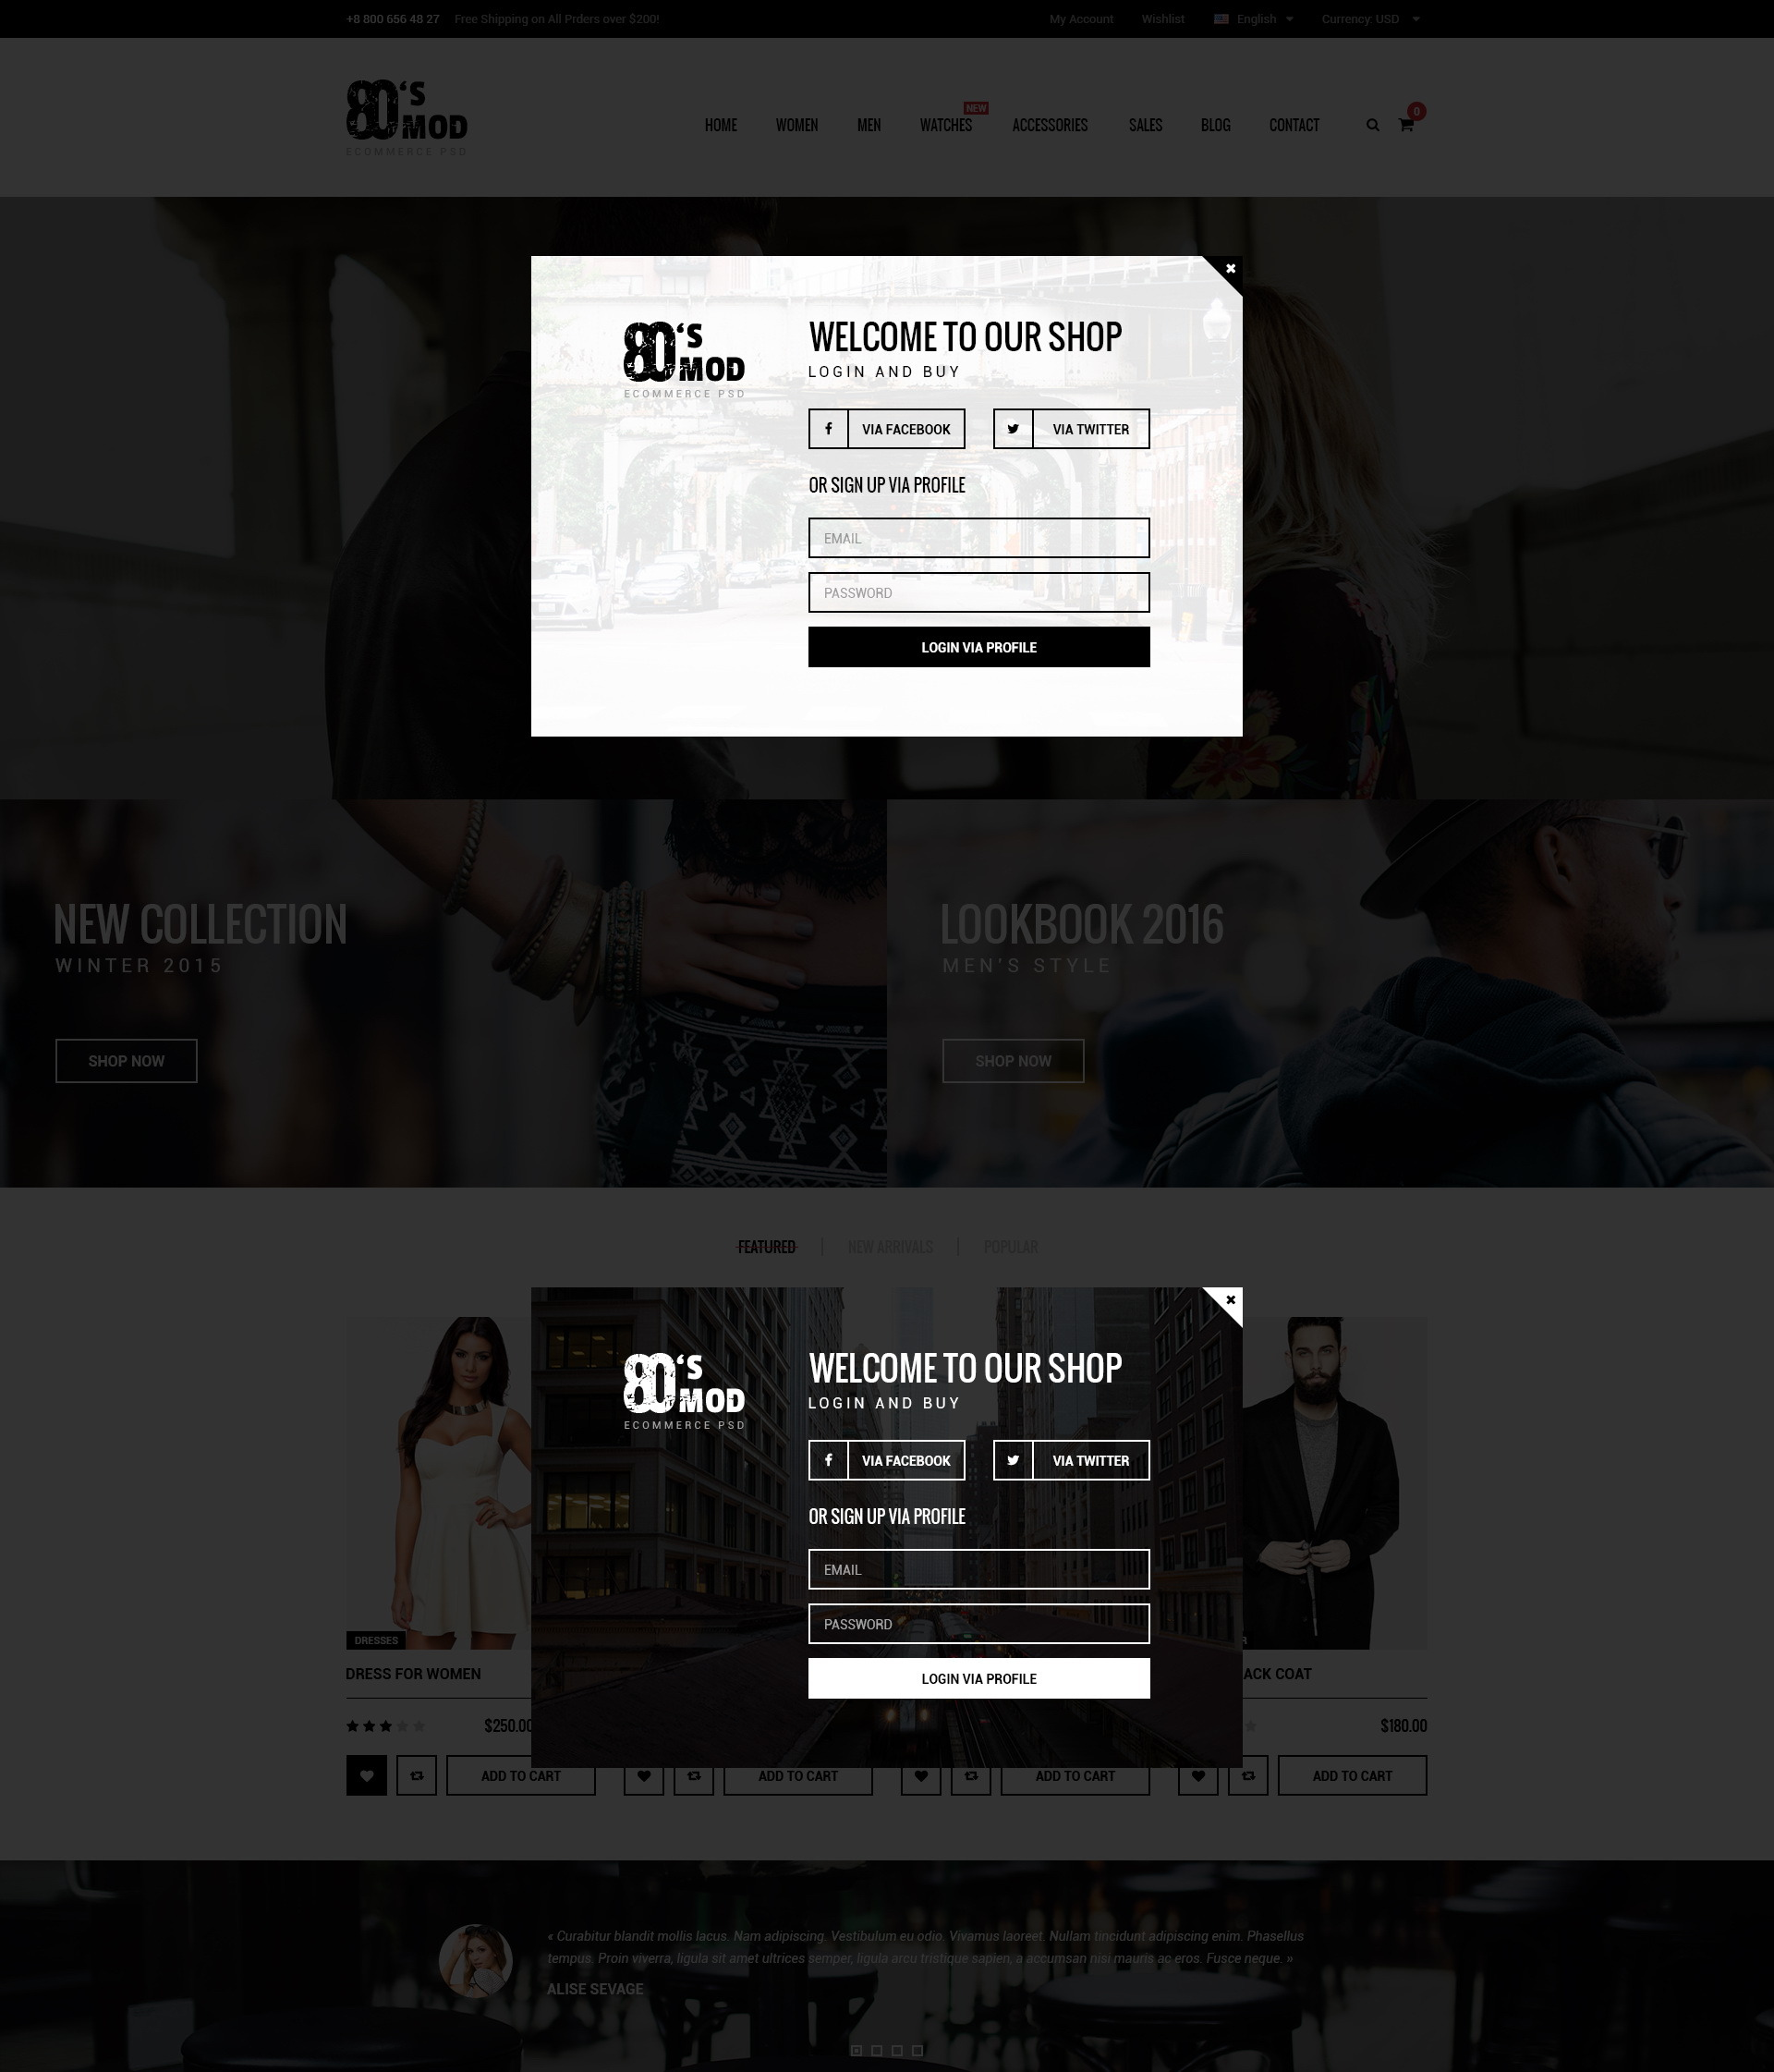 80\'s MOD - eCommerce PSD Template by wwwebinvader | ThemeForest